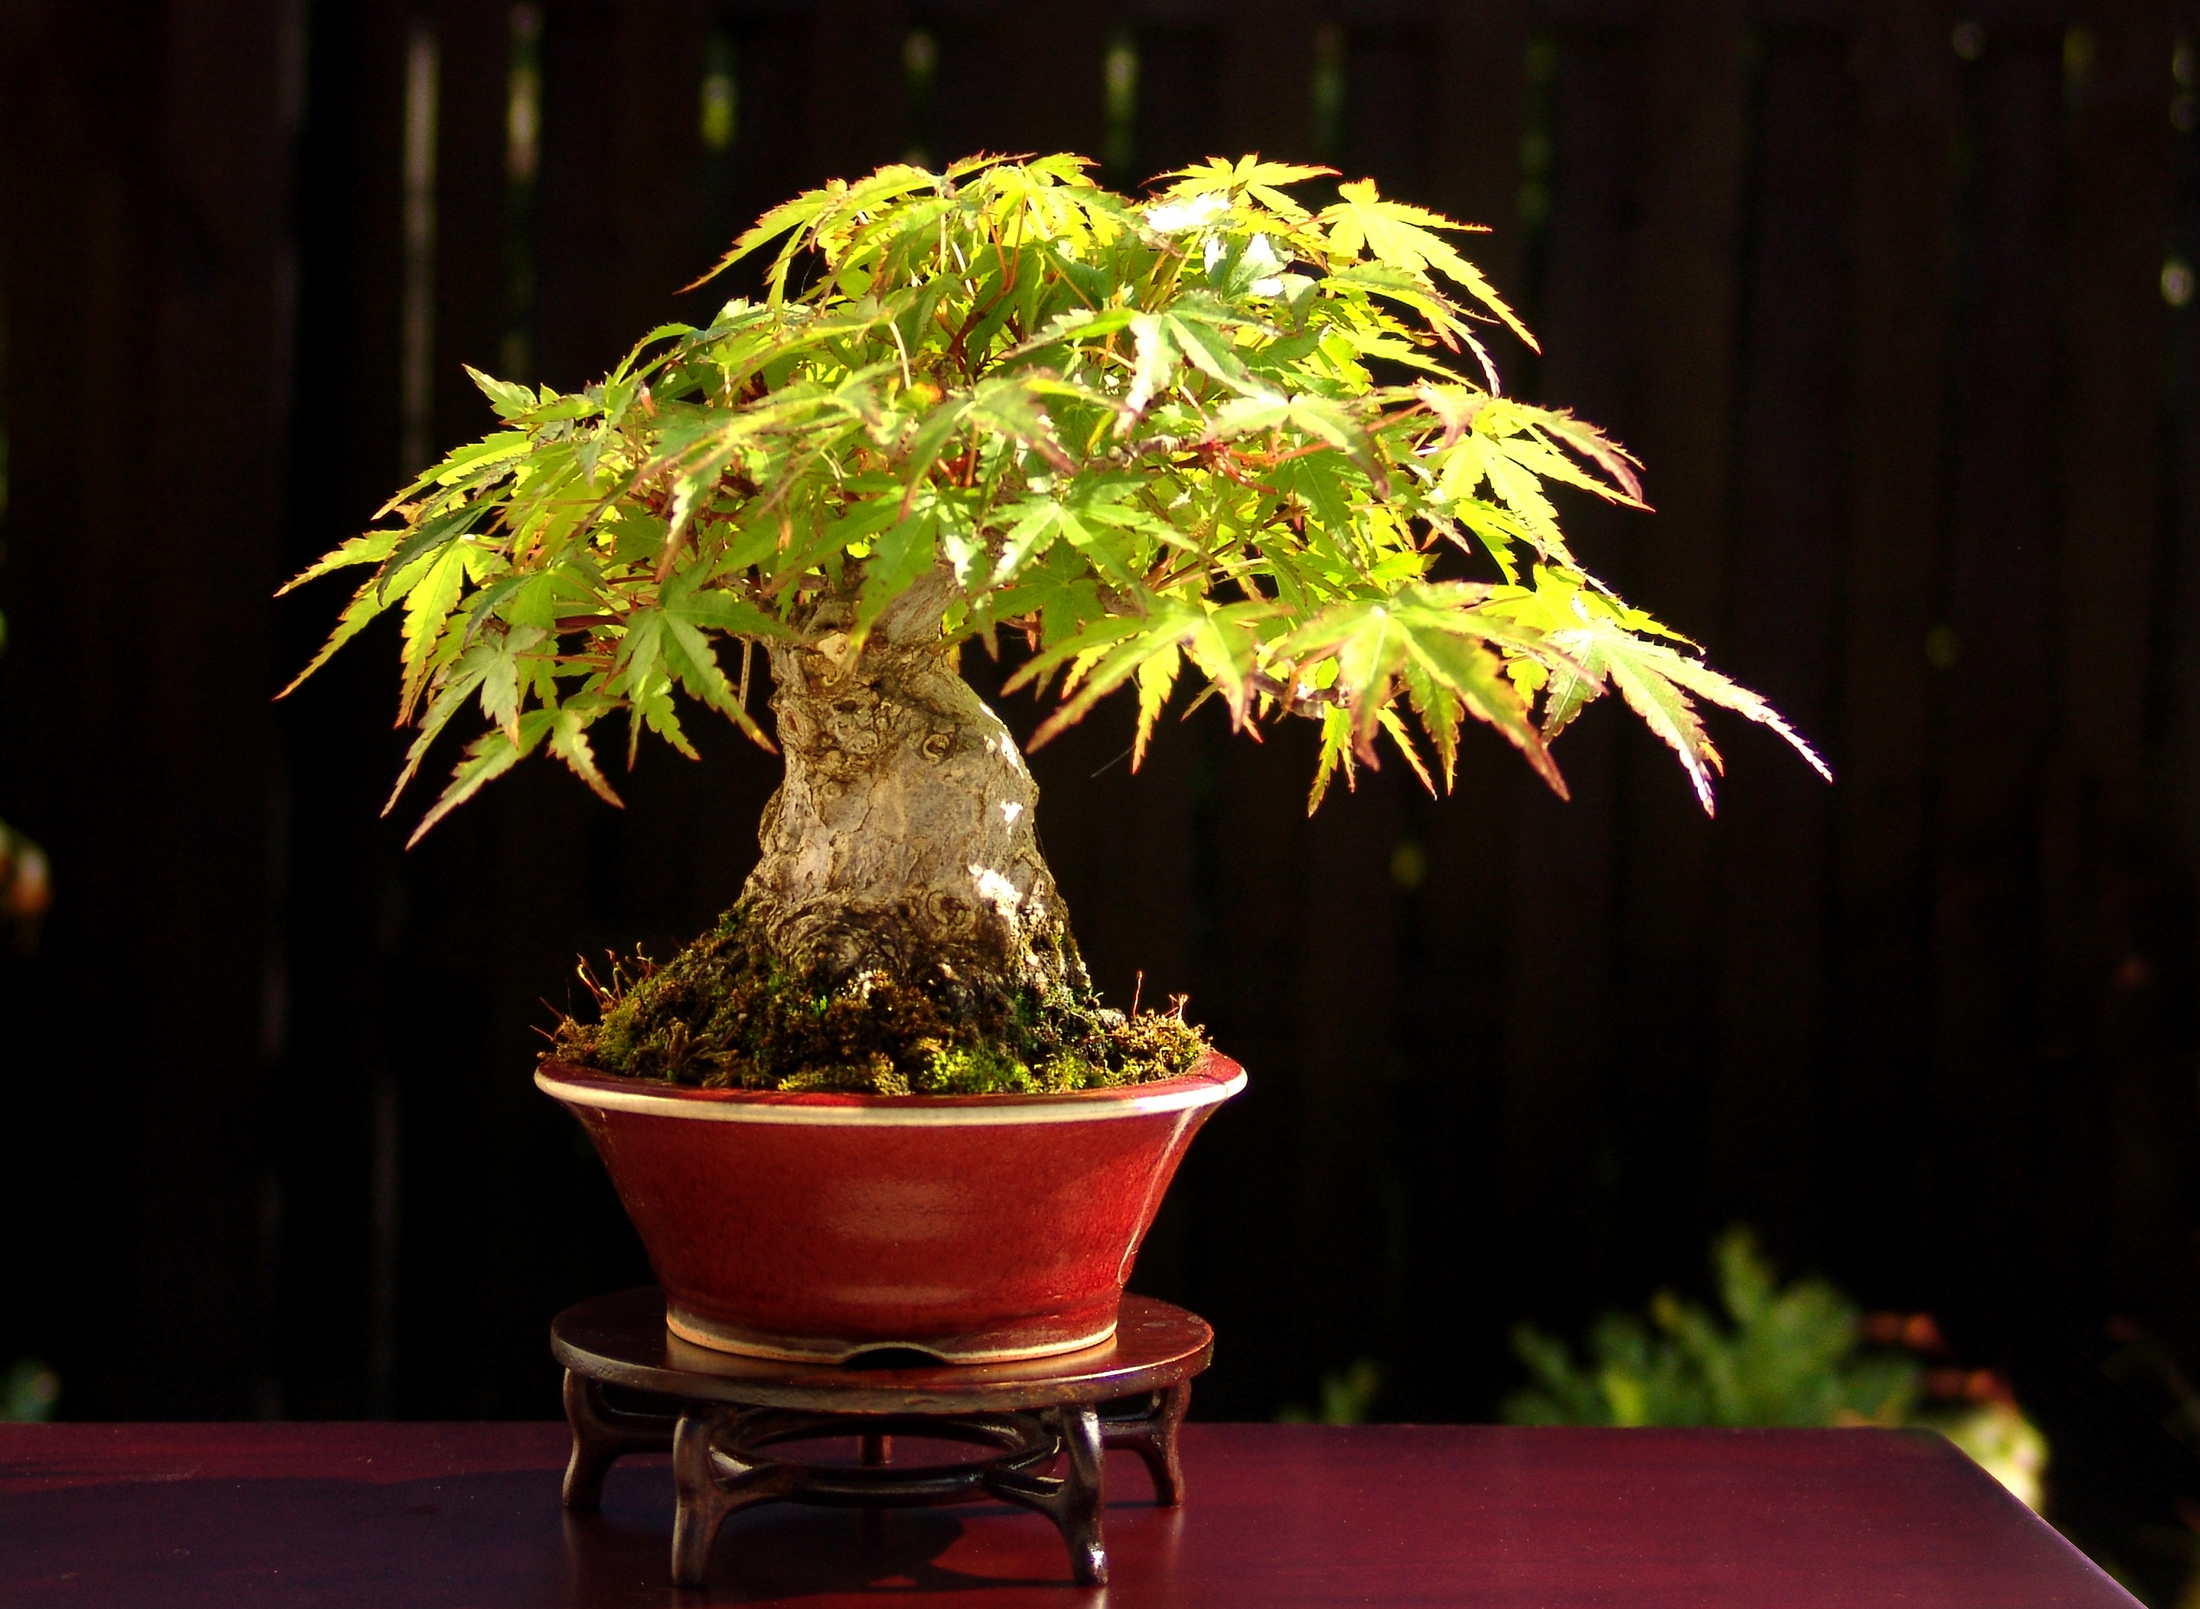 The Most Influential Bonsai Artists From Outside Japan All Wiring Demo Course To Follow Where You Will Get Both Design Advice And Growing Techniques Mix That With Books People Have A Lot Of Fun